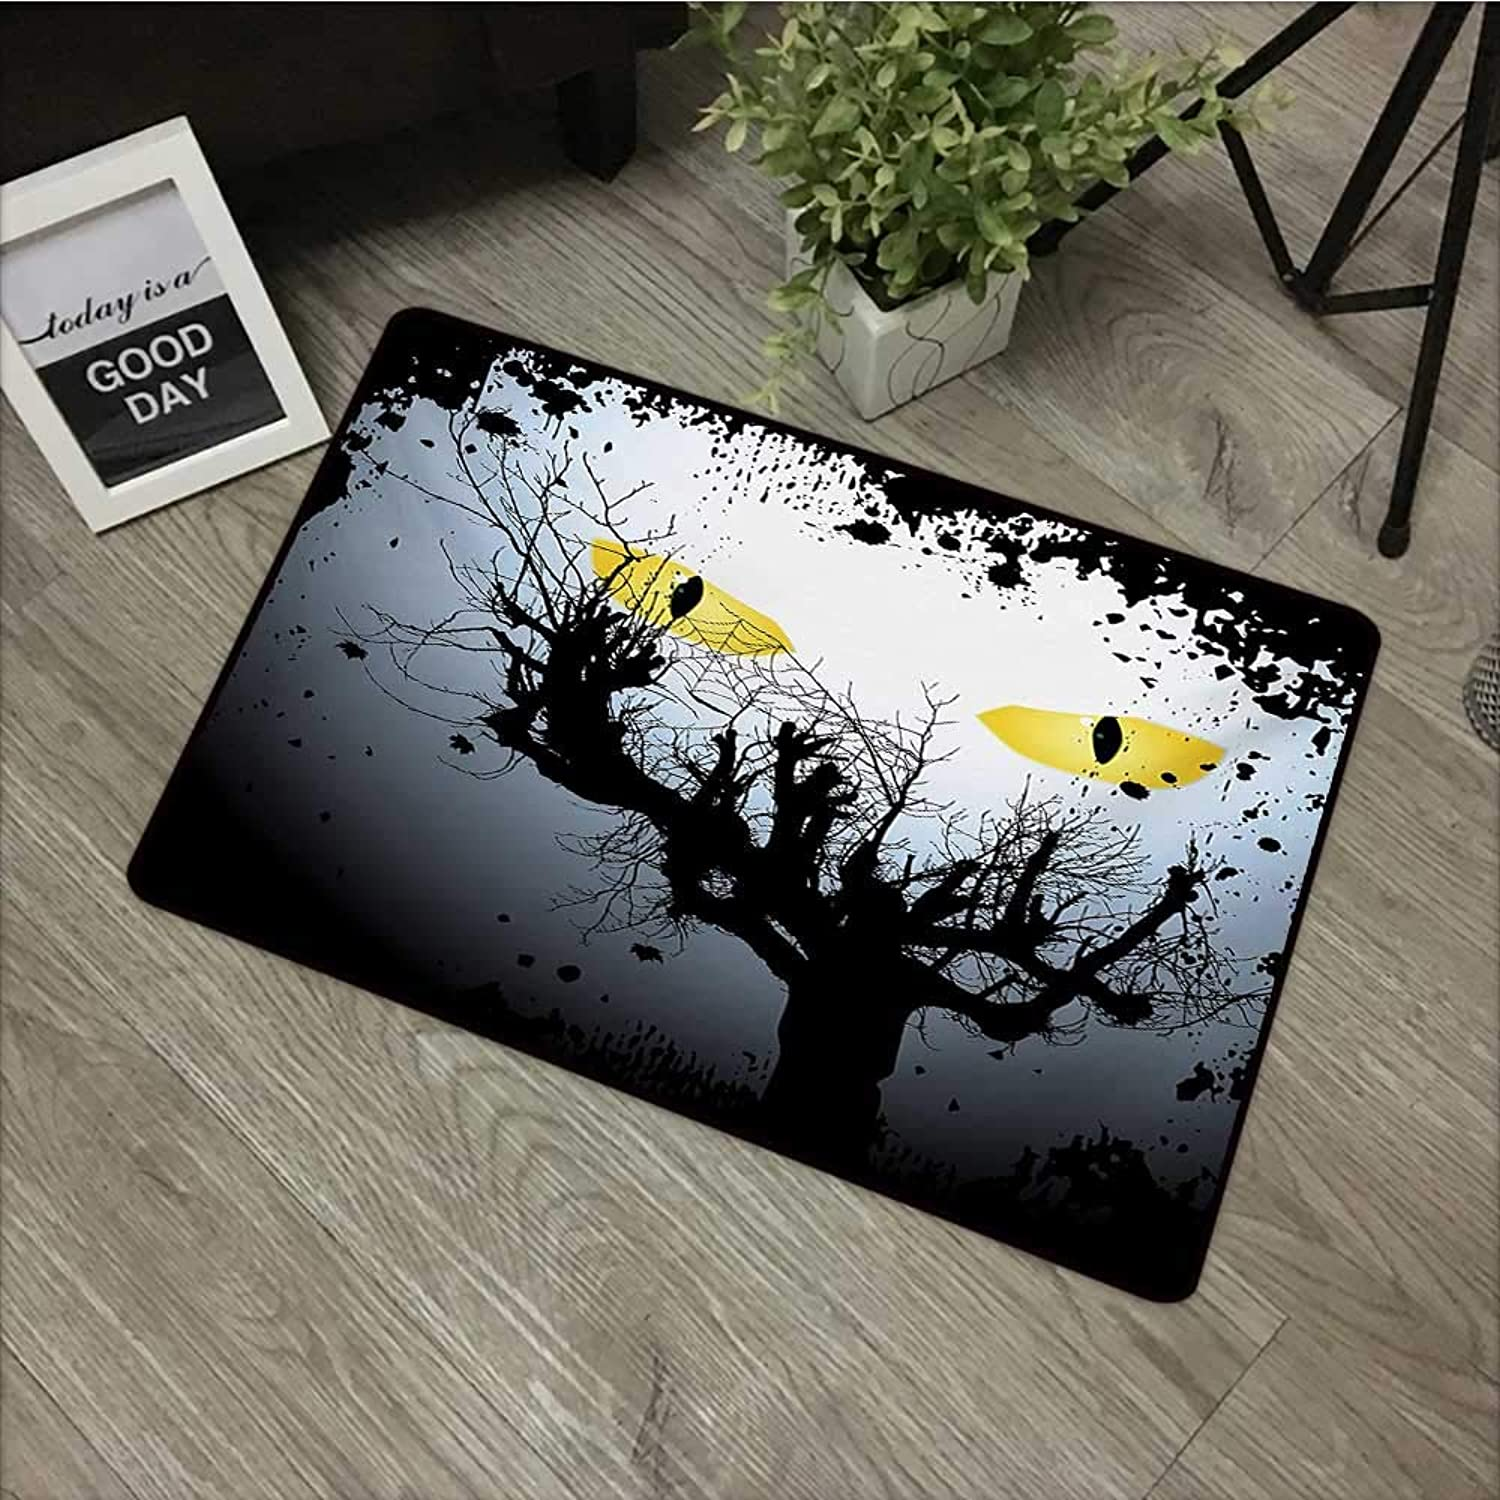 Bedroom Door mat W35 x L59 INCH Horror House,Scary Eyes Backgrounded Leafless Old Branch Angry Hunt Cat Animal Creature,Yellow Black Non-Slip, with Non-Slip Backing,Non-Slip Door Mat Carpet